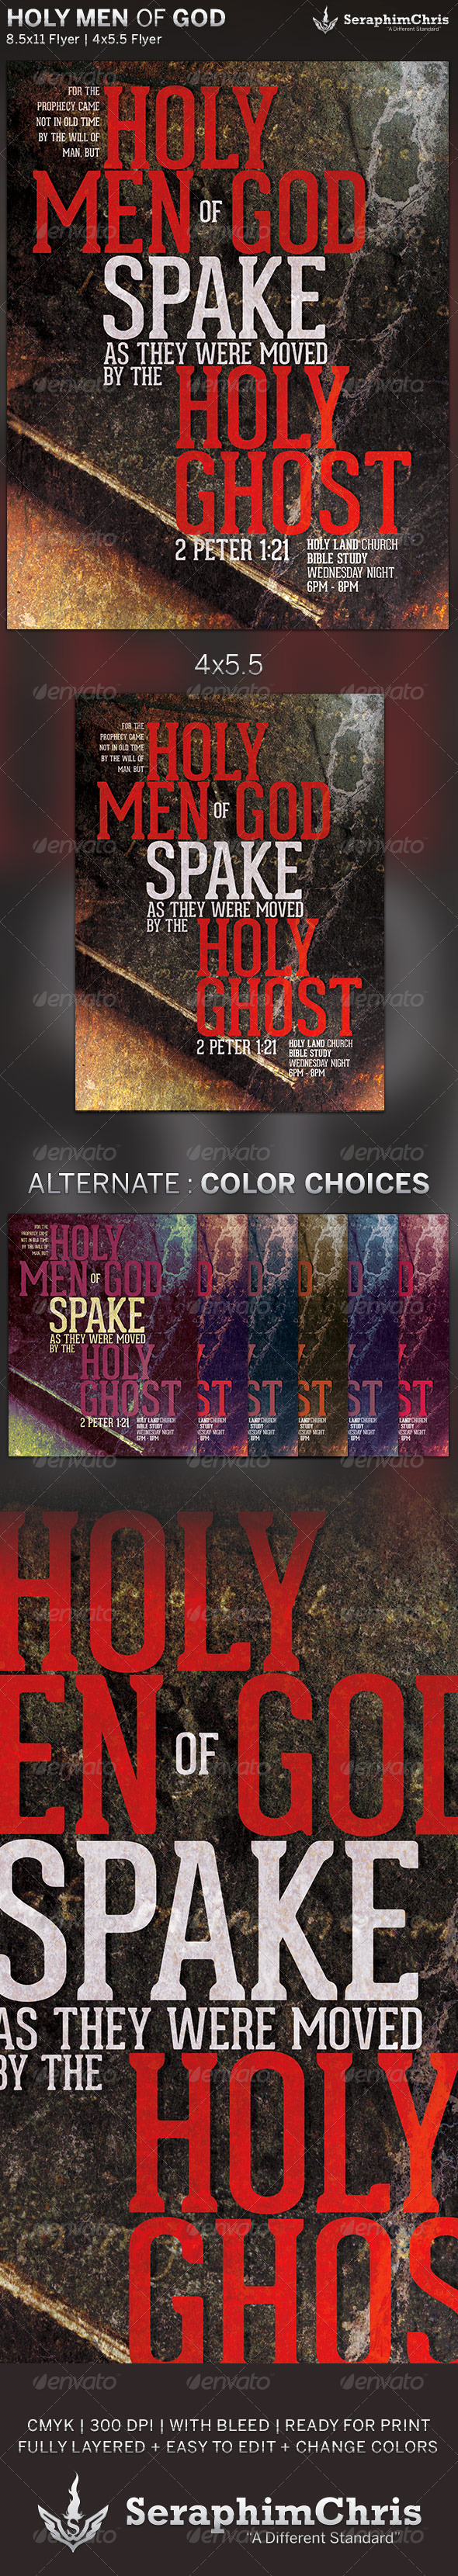 Holy Men of God: Church Flyer Template - Church Flyers